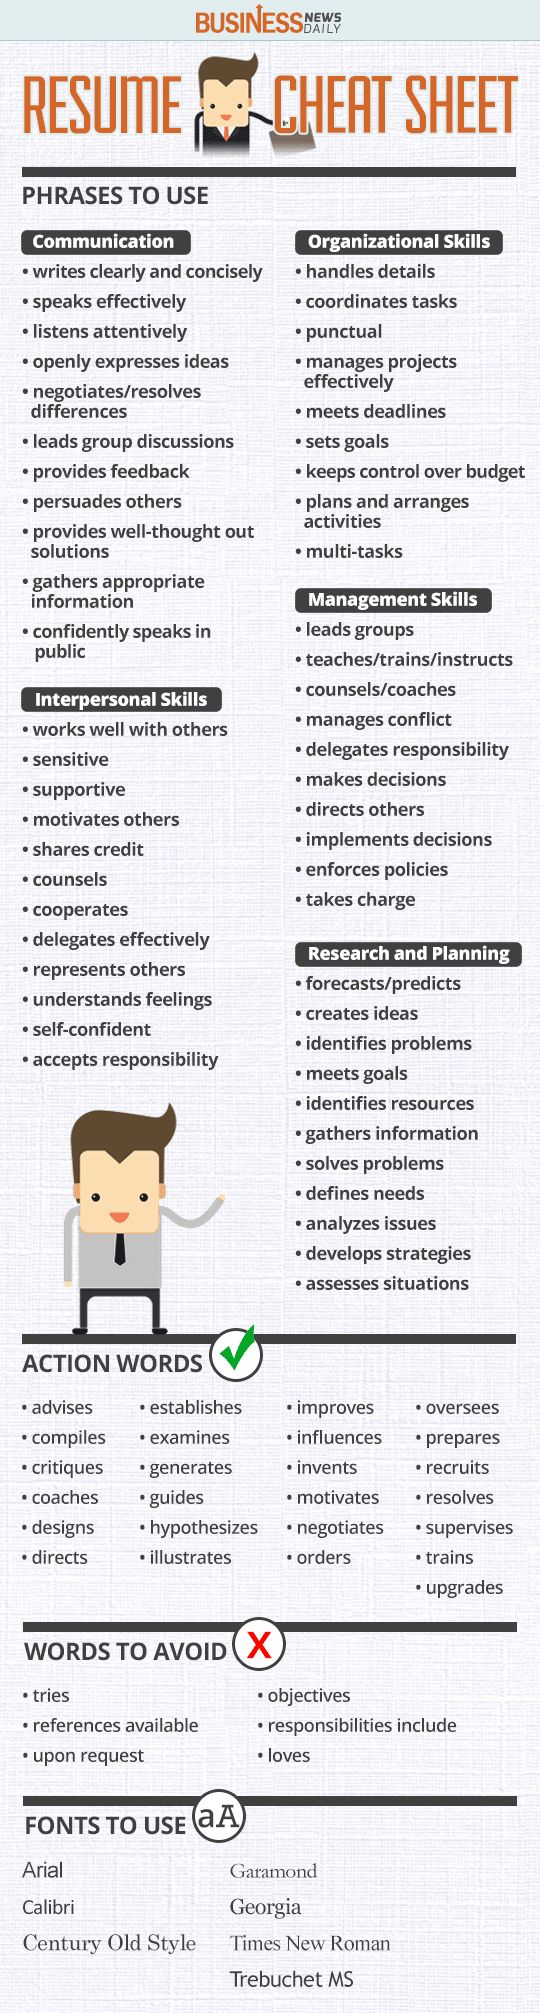 Best Words For Resume 119 Best Job Resume Images On Pinterest  Gym Career And Productivity